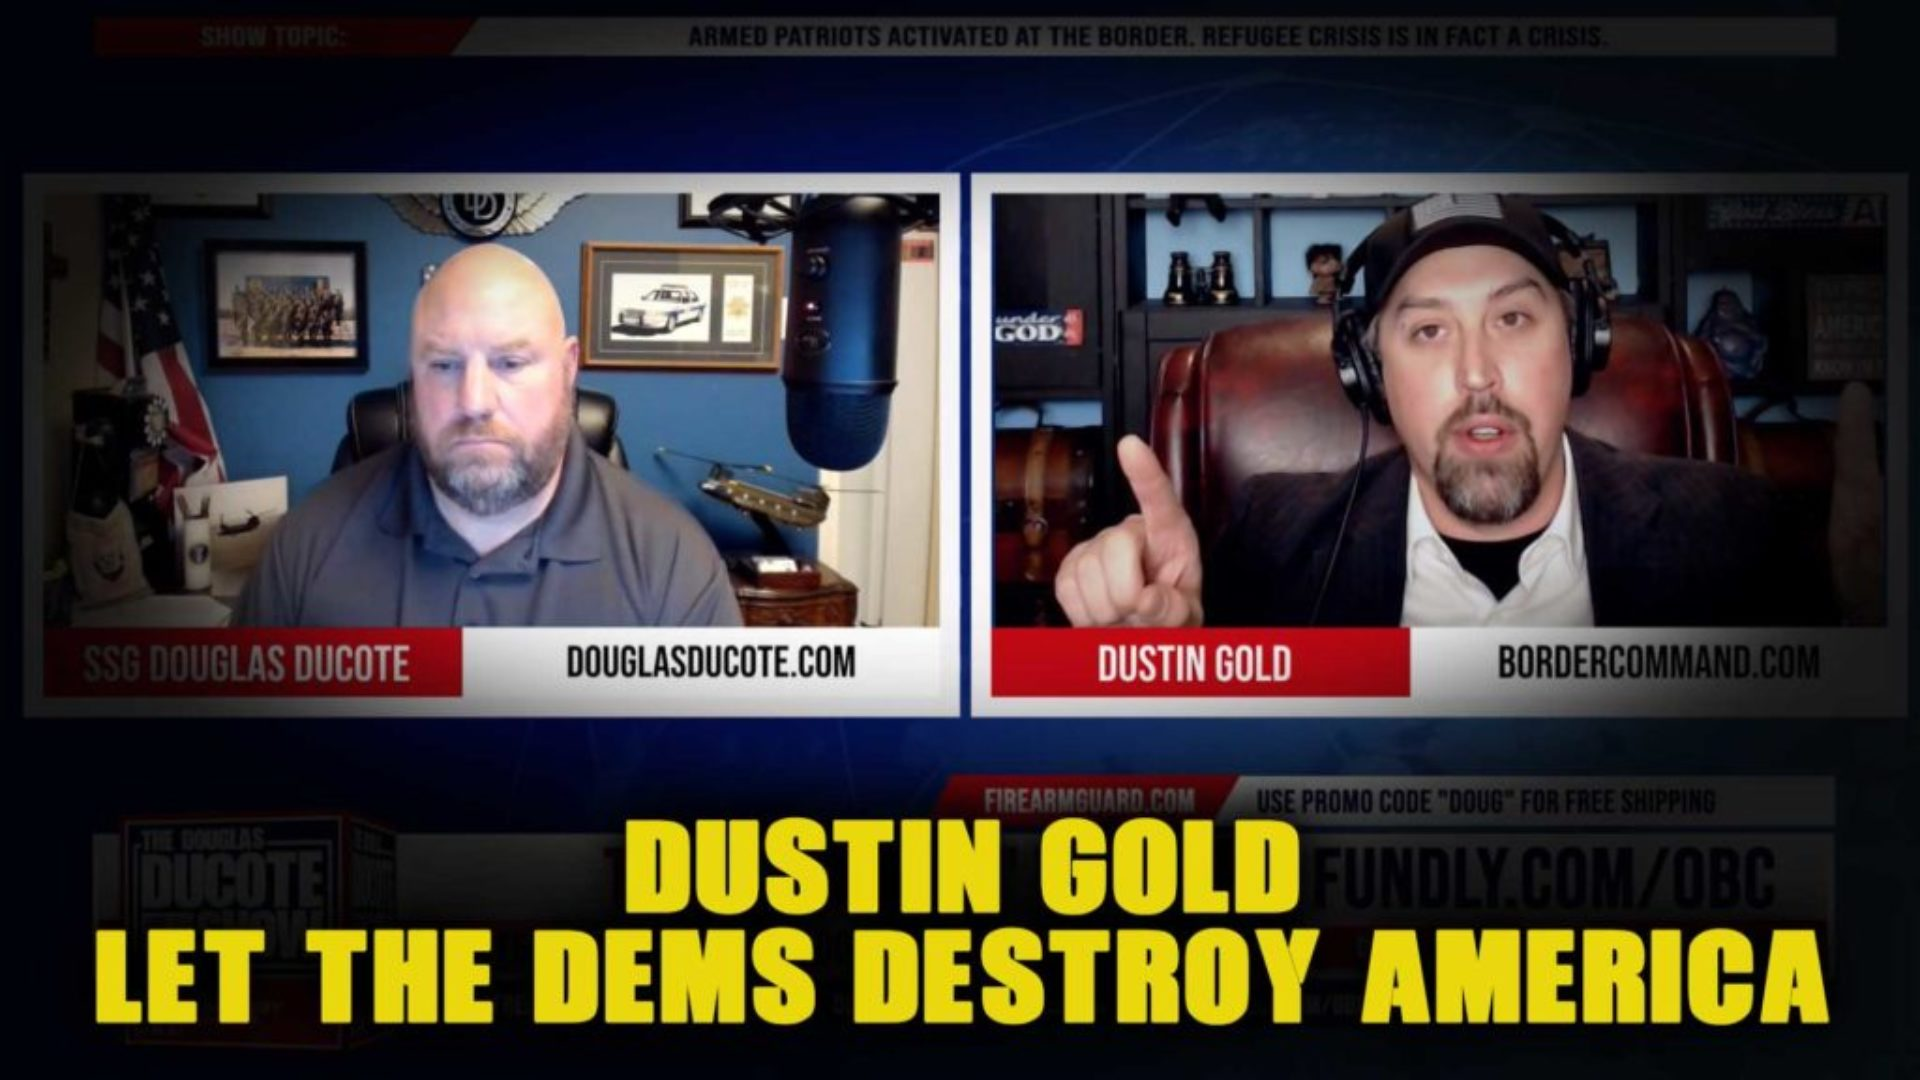 Dustin-Gold-Let-The-Dems-Destroy-America